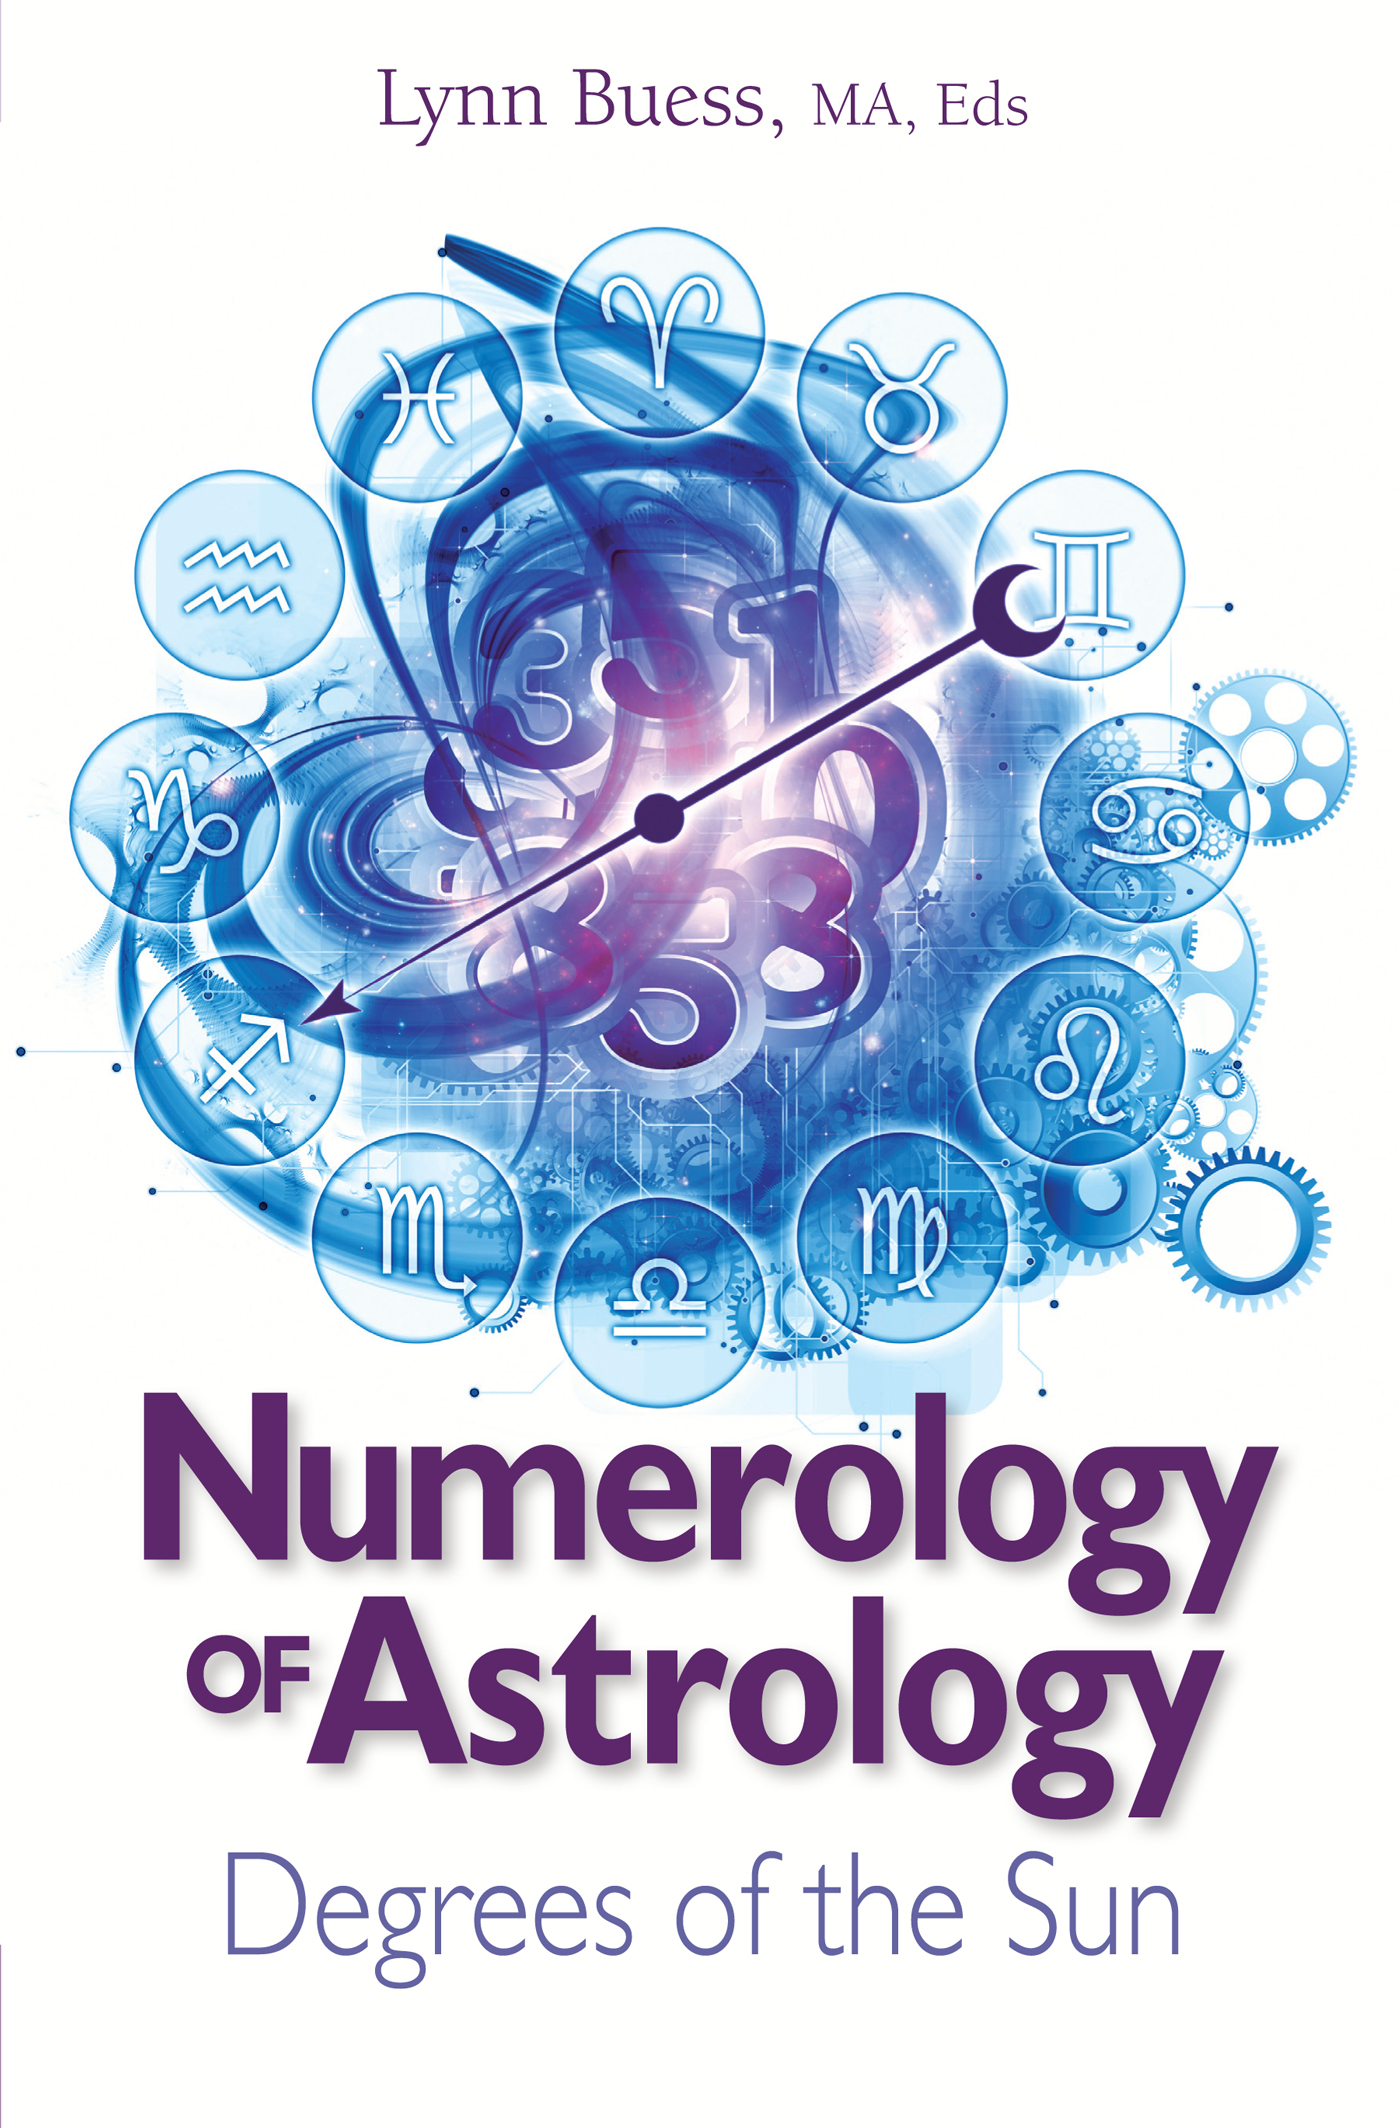 True numerology compatibility image 2